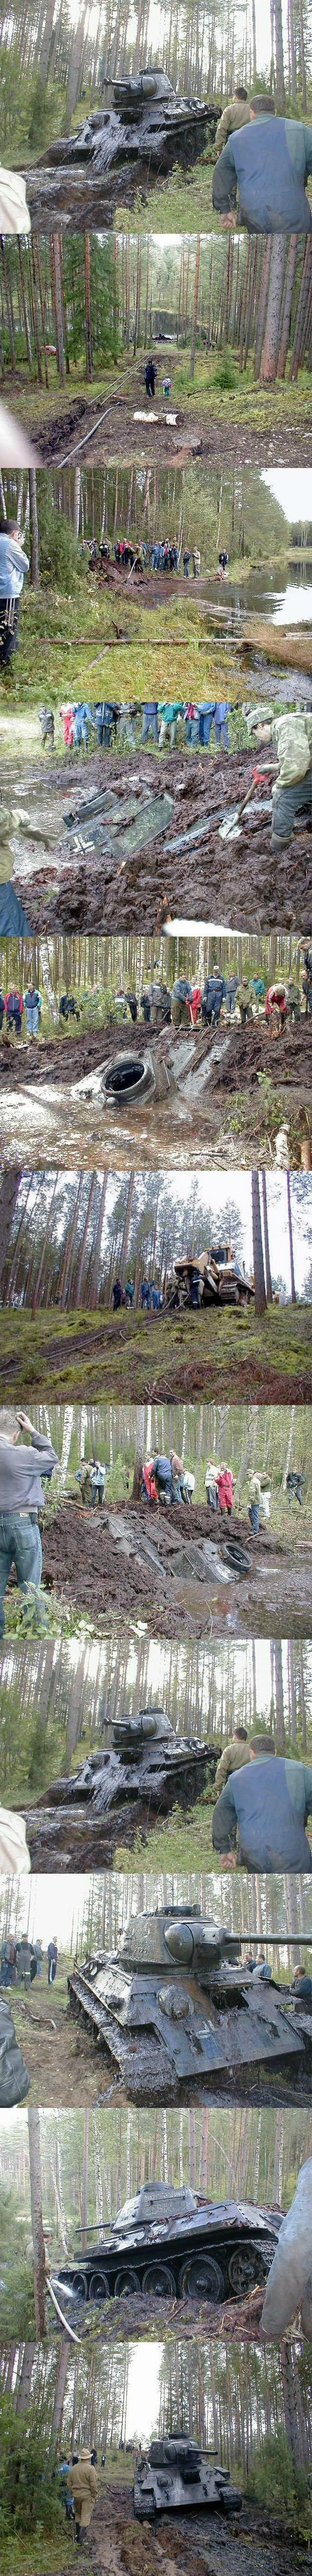 Soviet WW2 Tank With German Markings Found In The Mud After 62 Years. - Imgur